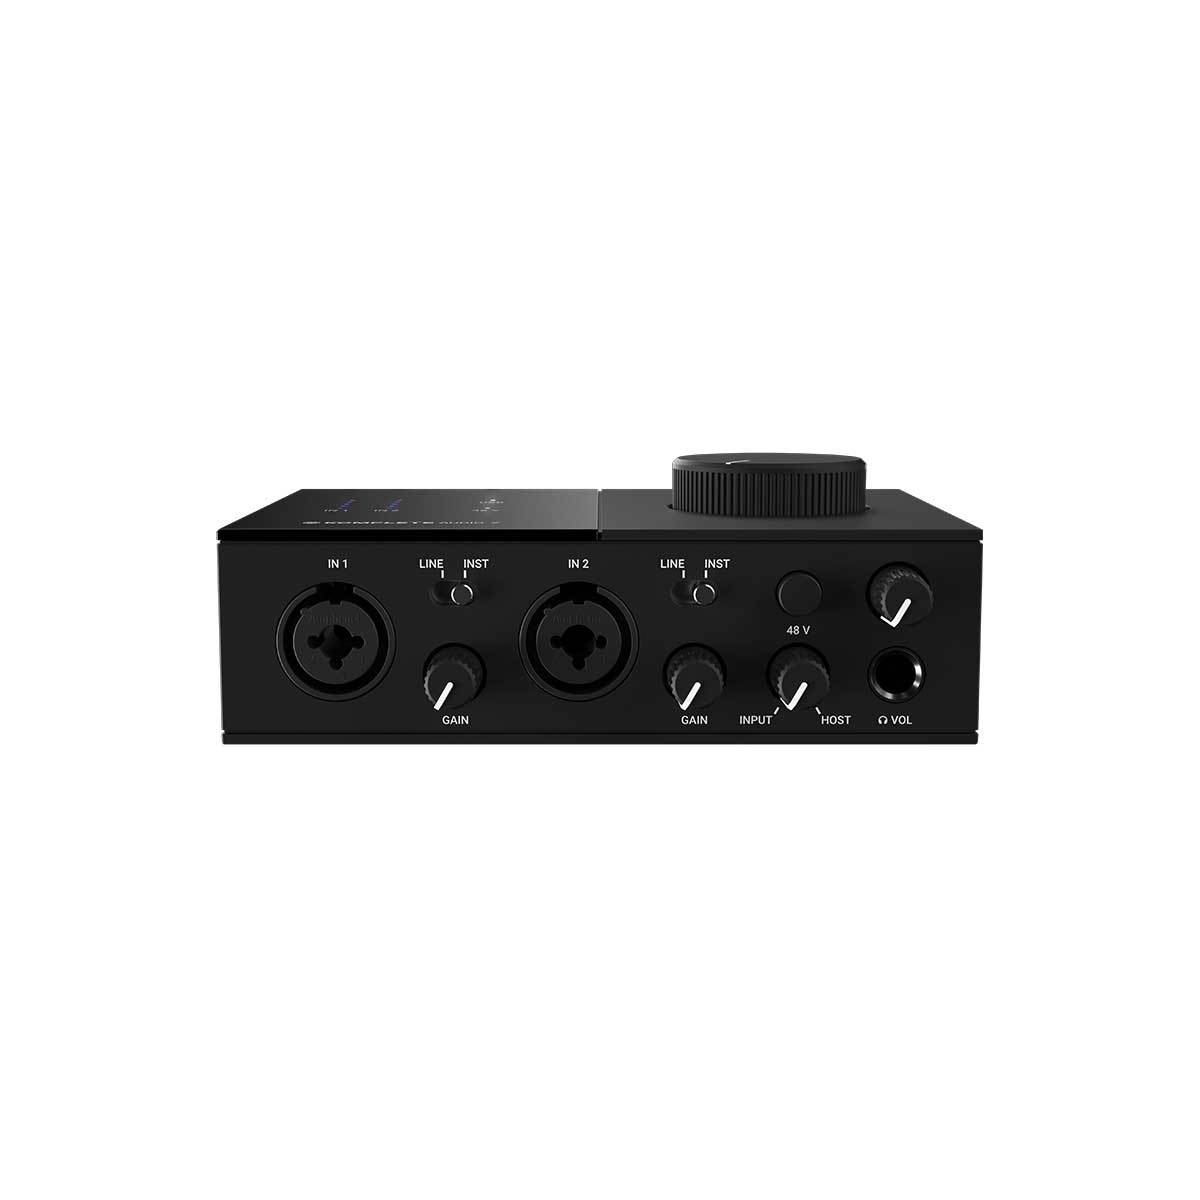 USB Audio Interfaces - Native Instruments Komplete Audio 2 2-Channel USB Audio Interface